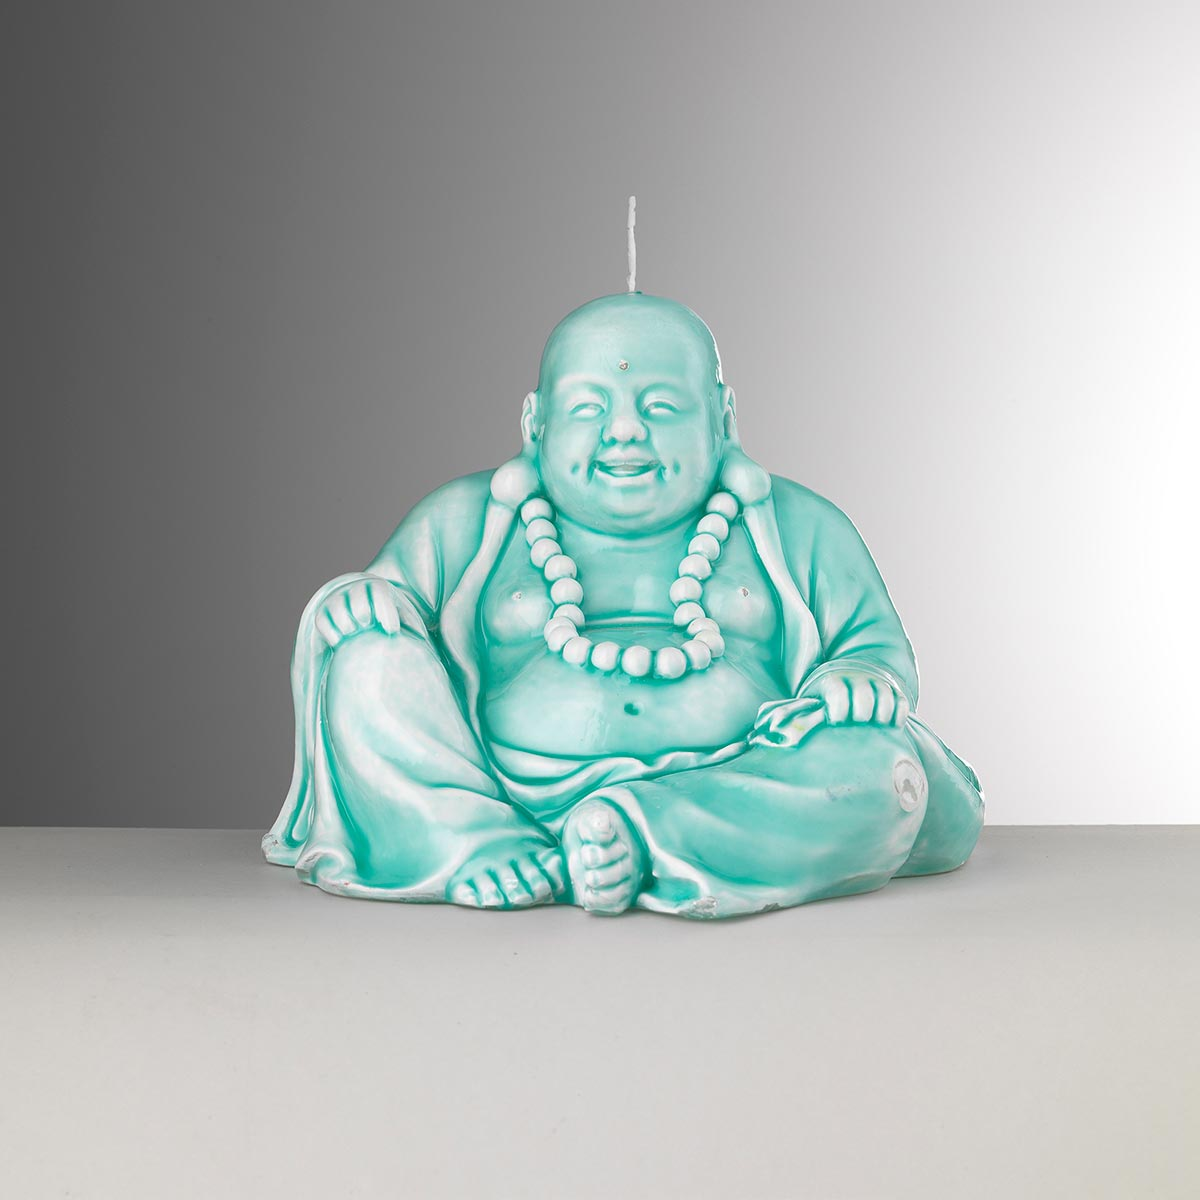 Bougie turquoise<br>H: 15cm, W: 18cm<br>Buddha